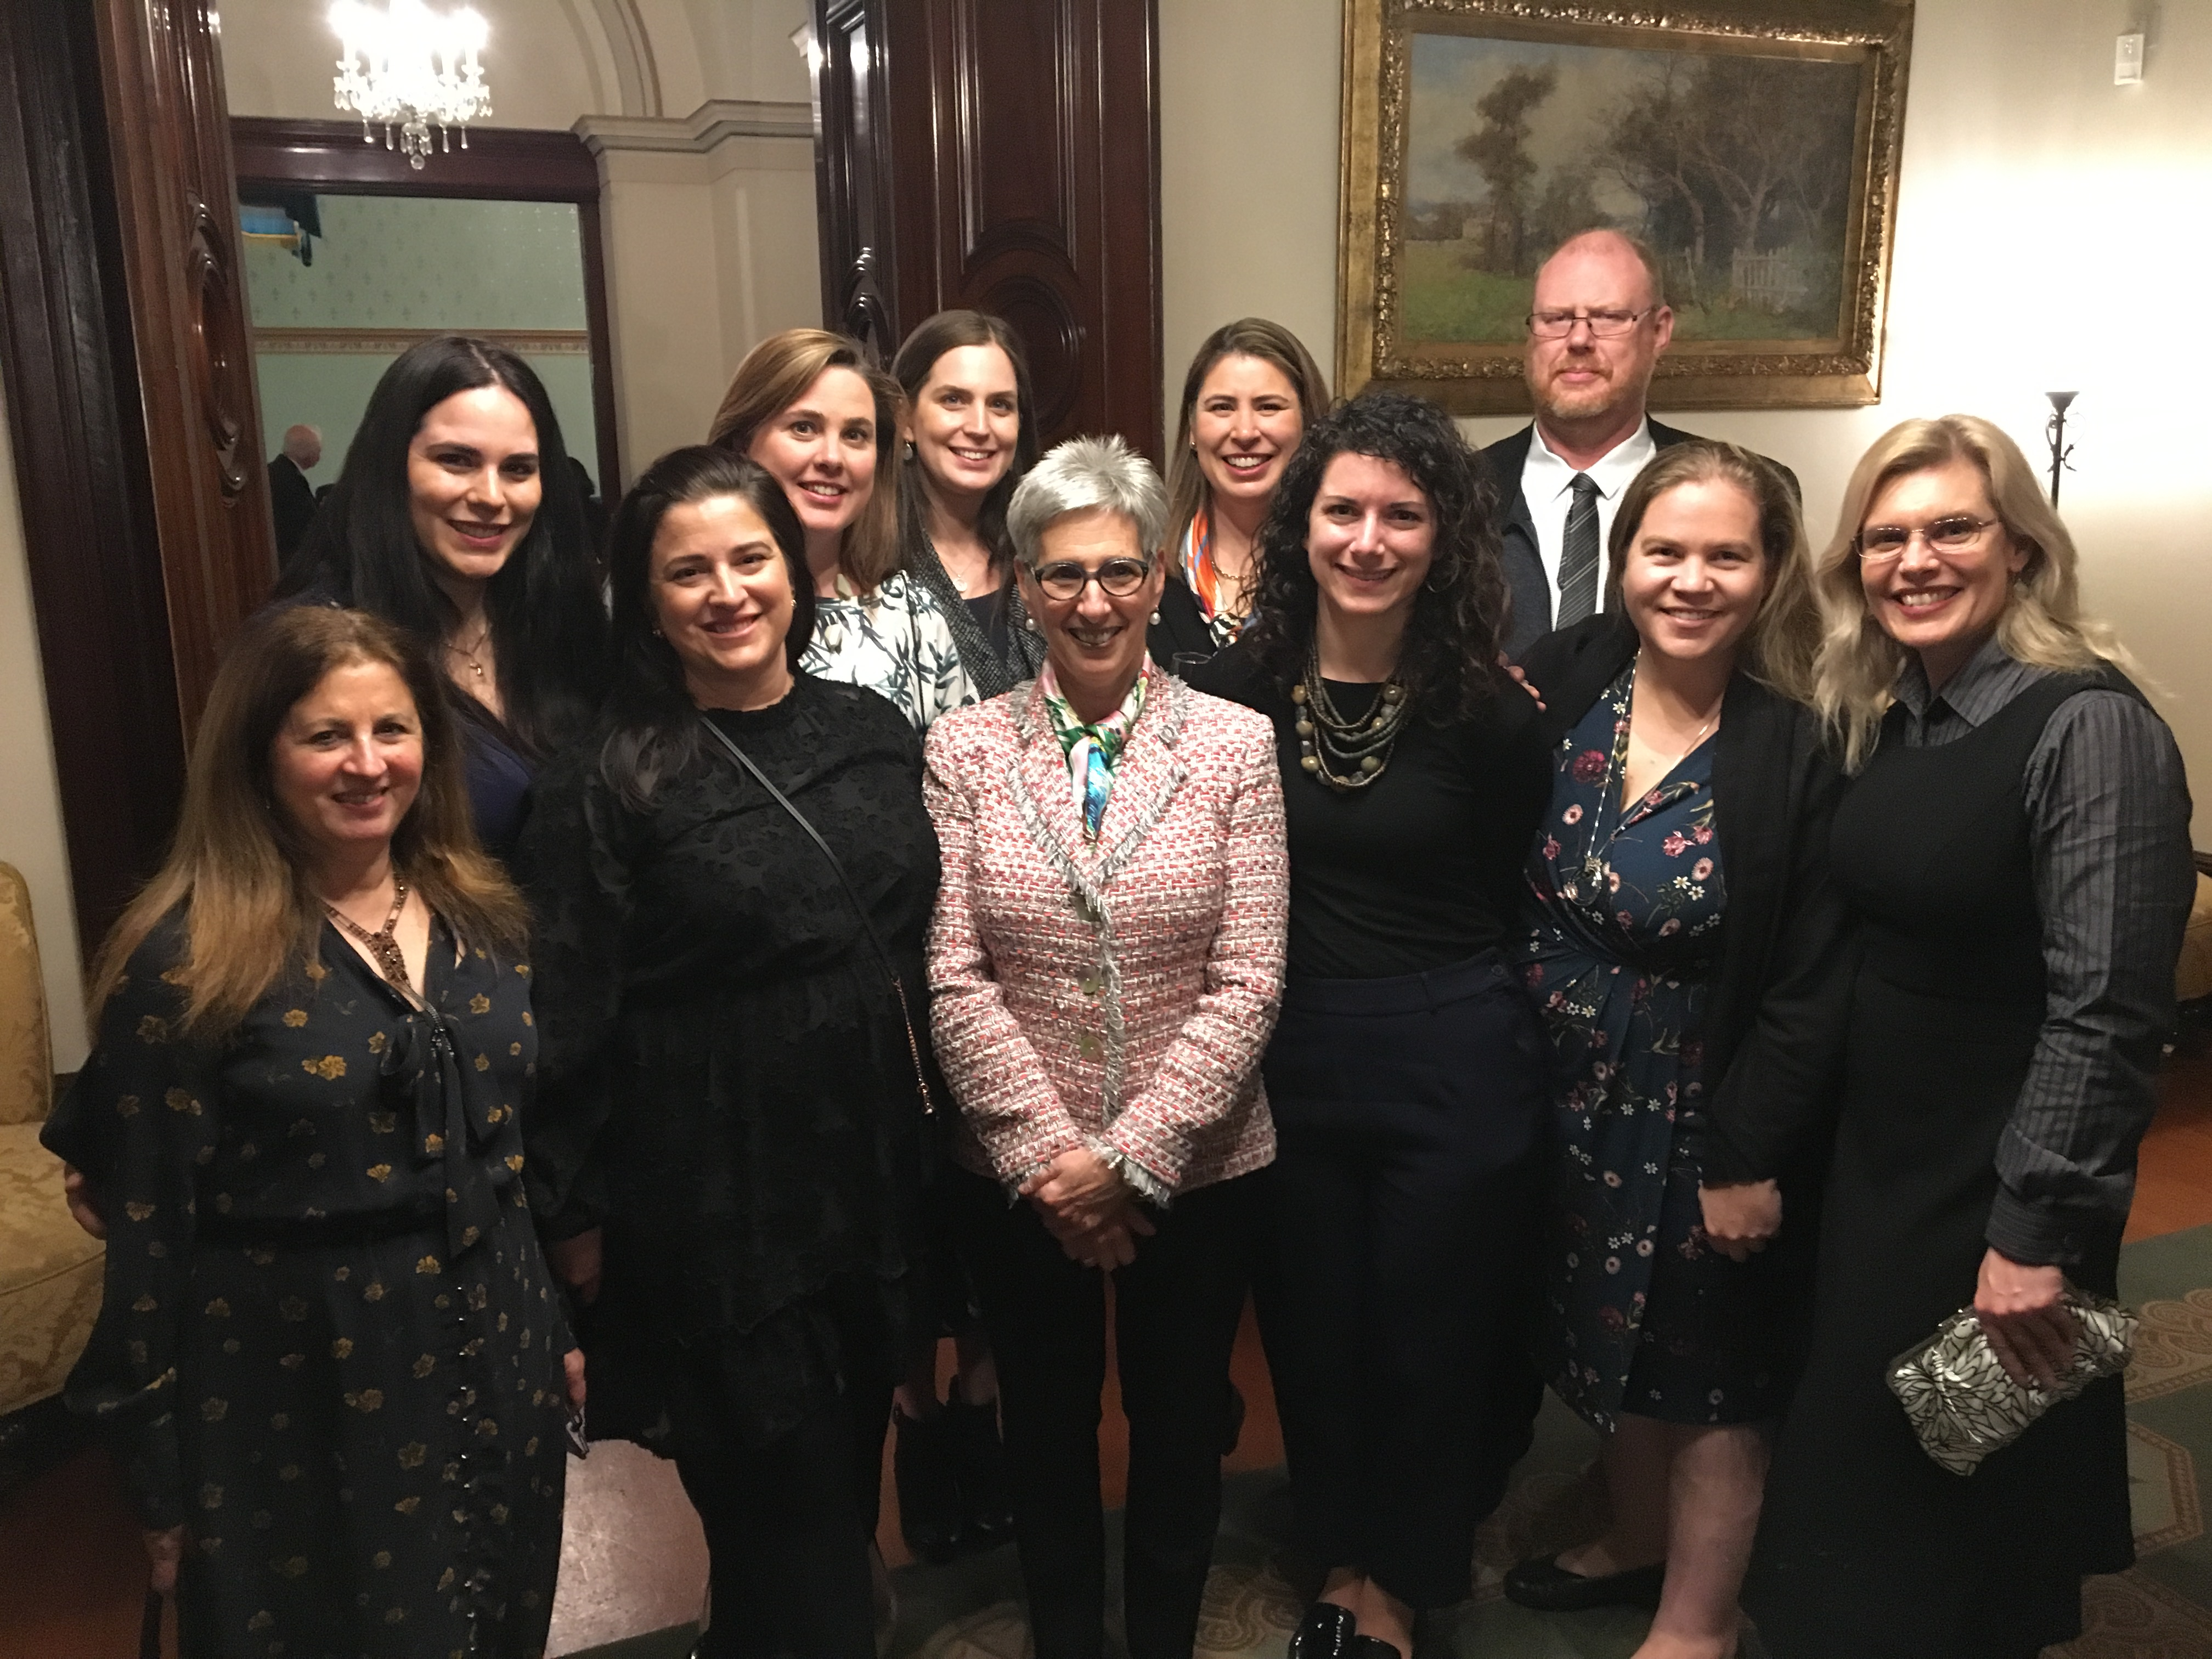 The Honourable Linda Dessau AC Governor of Victoria with MAV staff and Directors